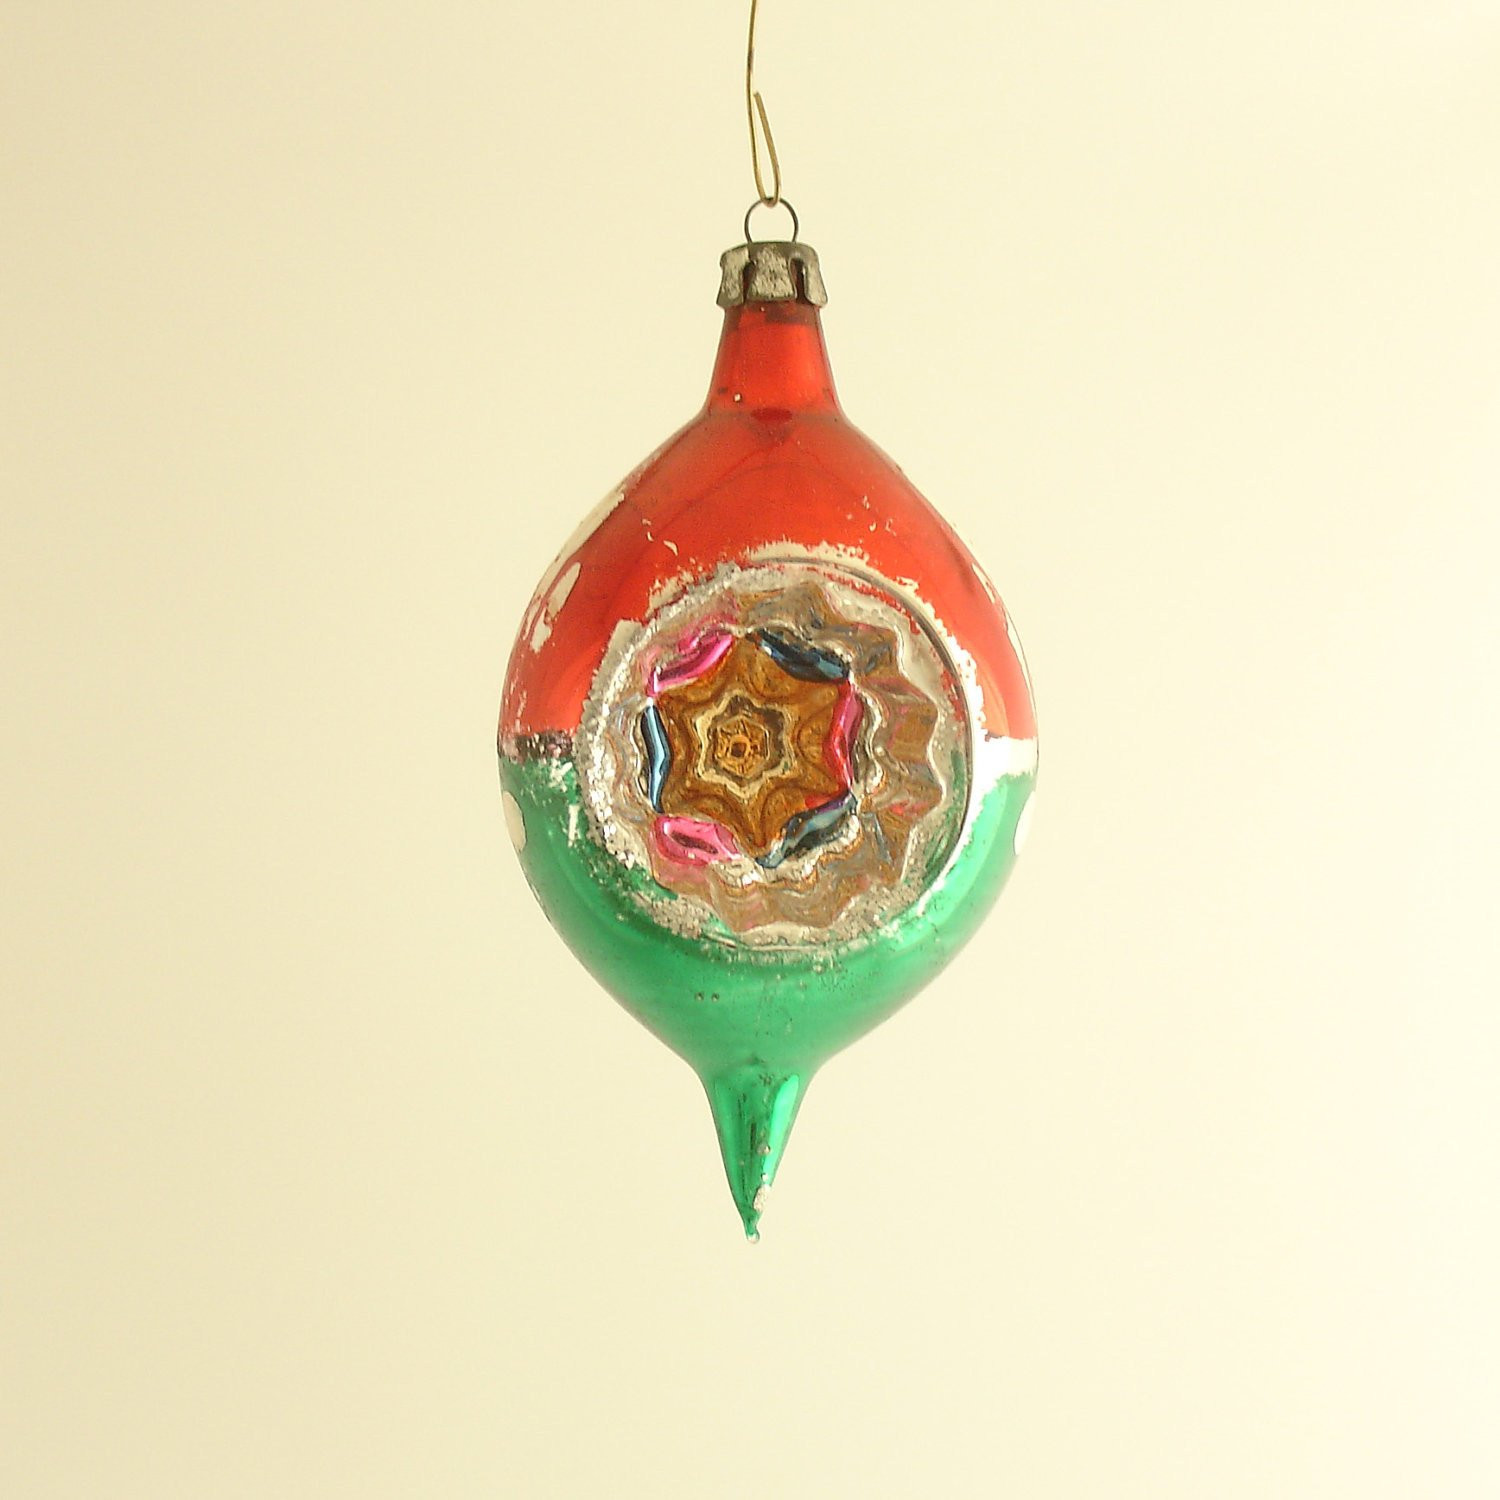 Vintage Christmas Ornament Glass Teardrop Indent